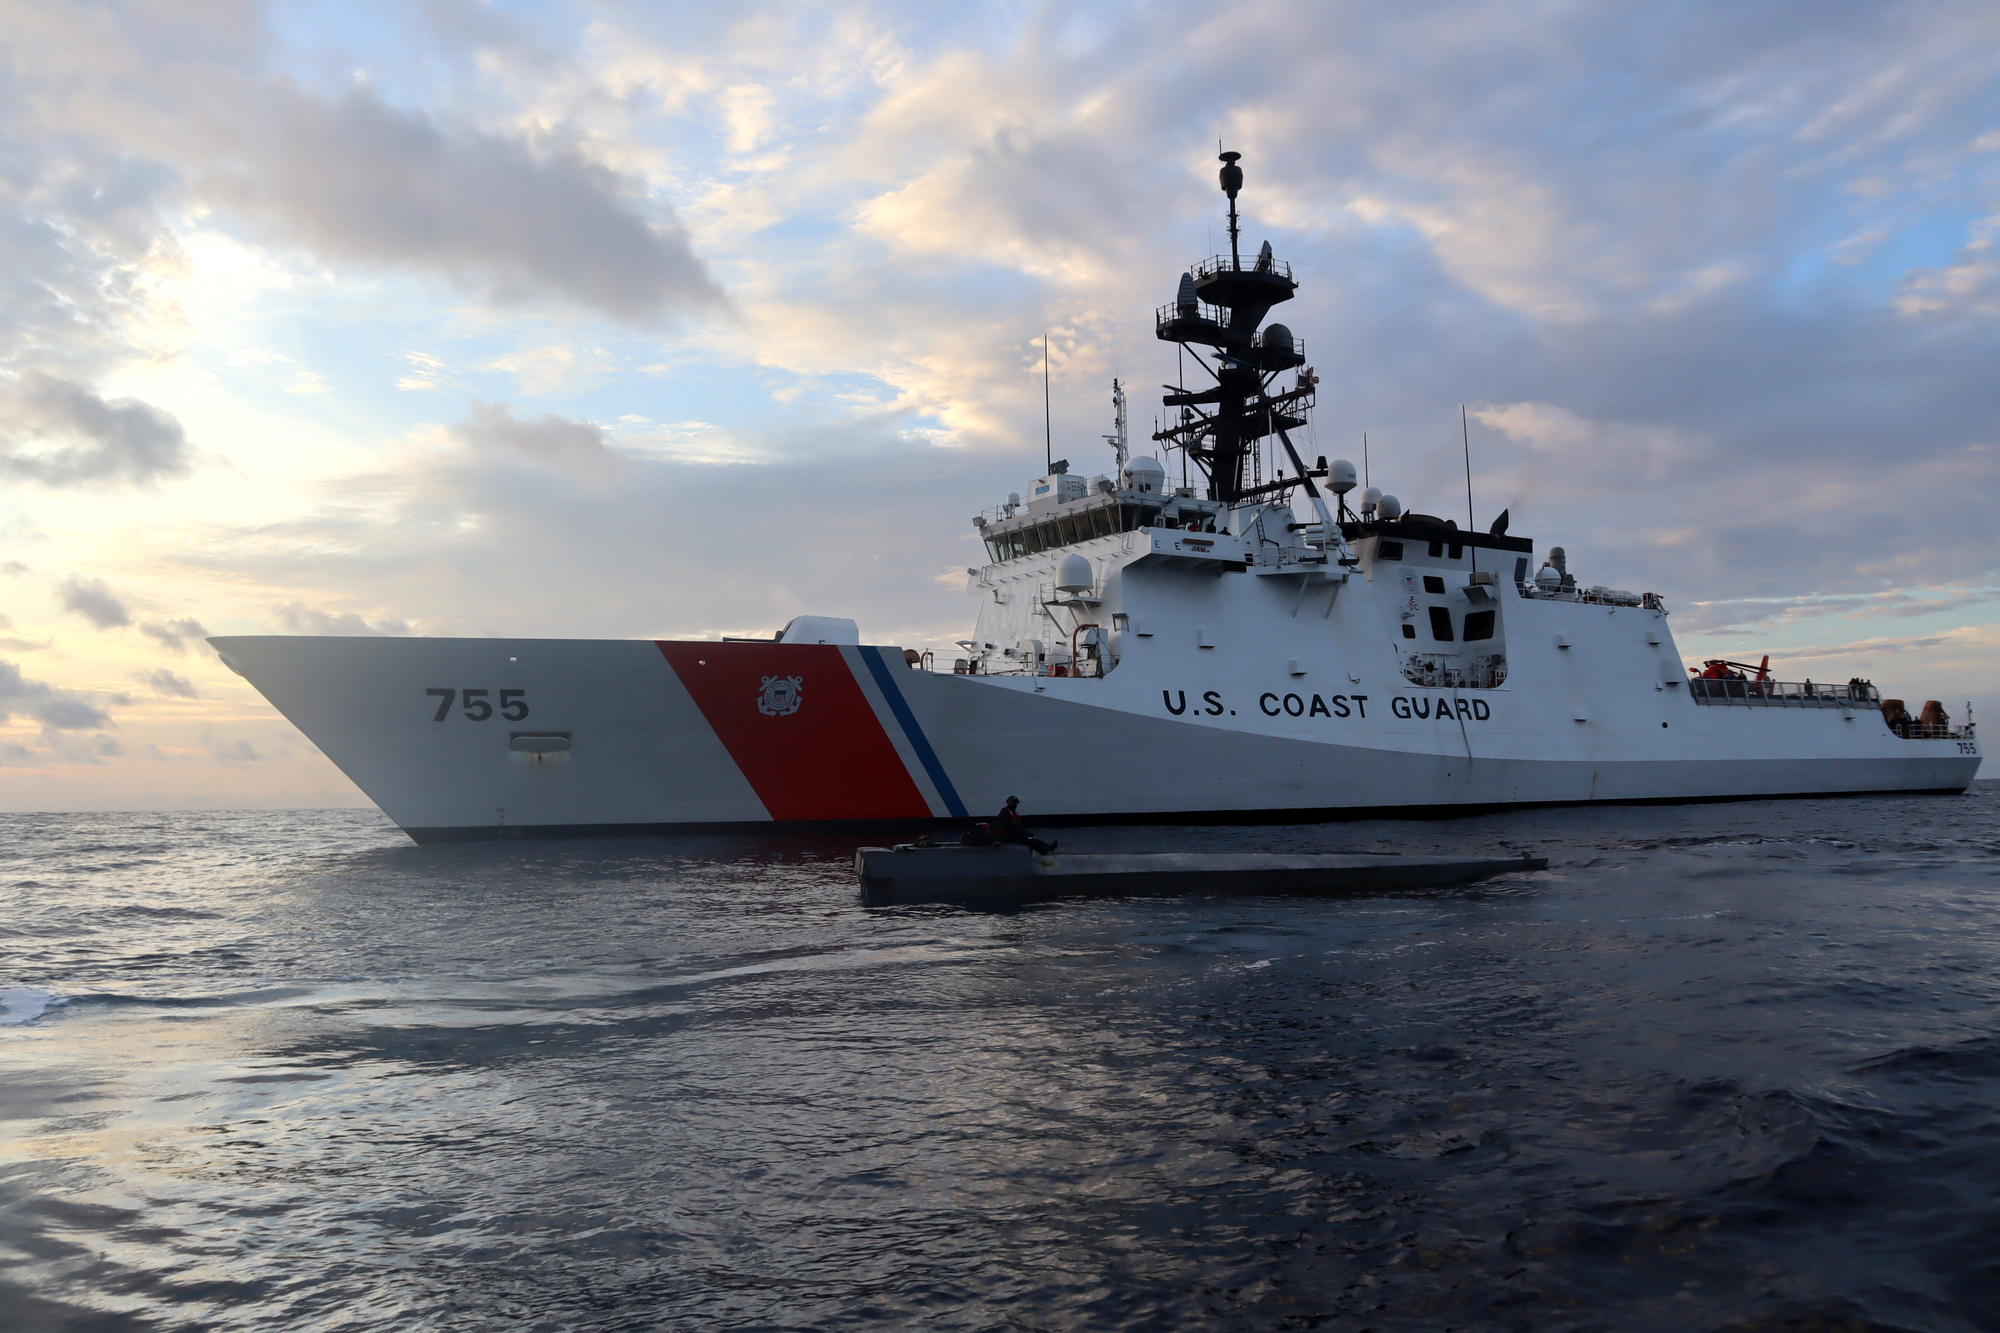 Alameda Coast Guard cutter crews interdict three suspected smuggling vessels in Eastern Pacific; $156M worth of cocaine seized